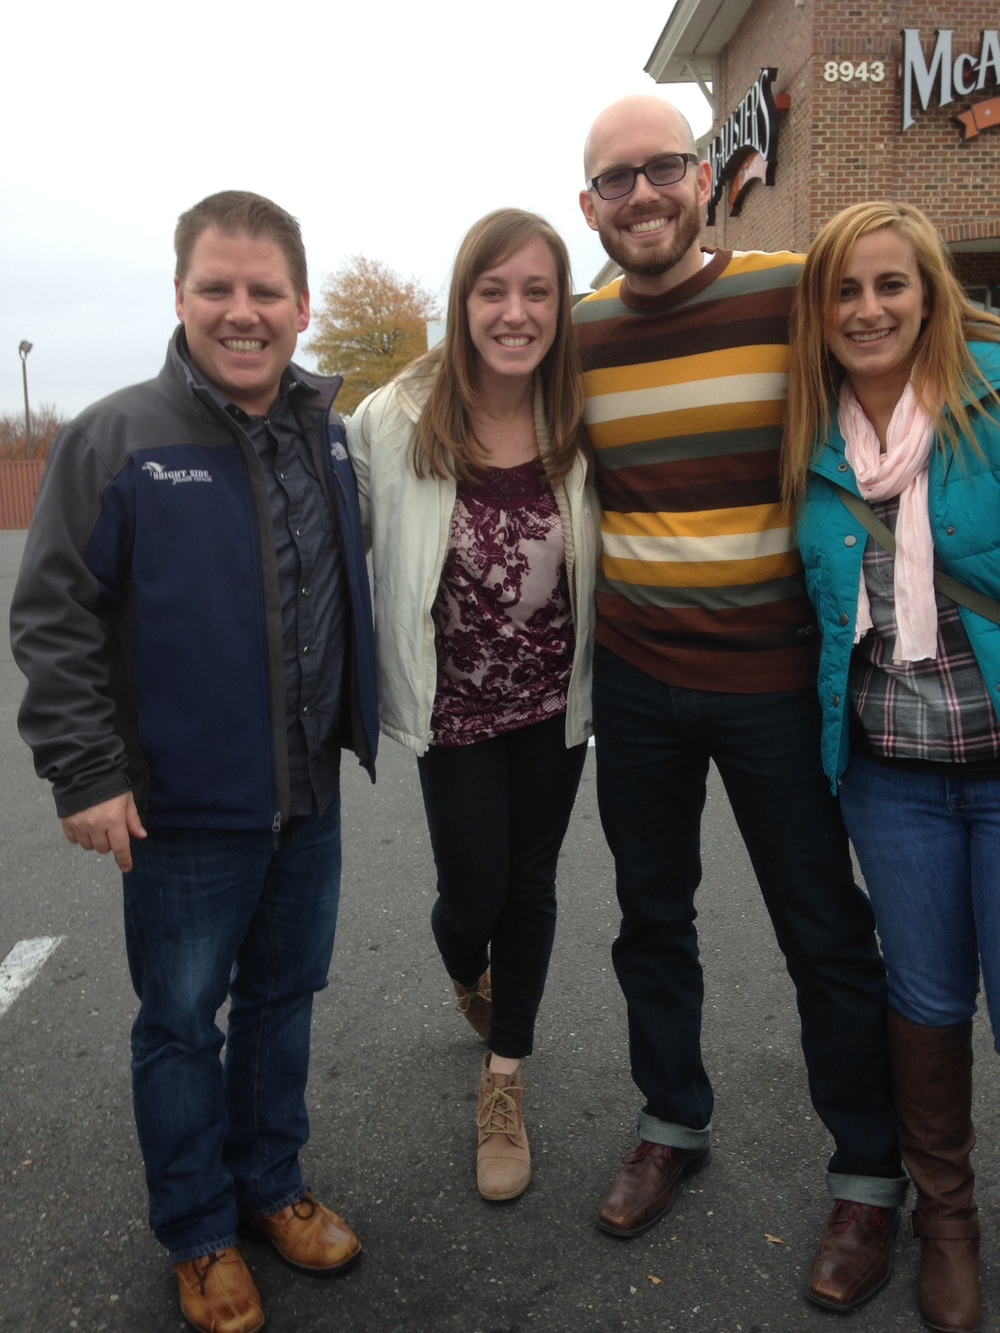 This is Chad and I with Devin and Tia after lunch, before we headed home to Raleigh.